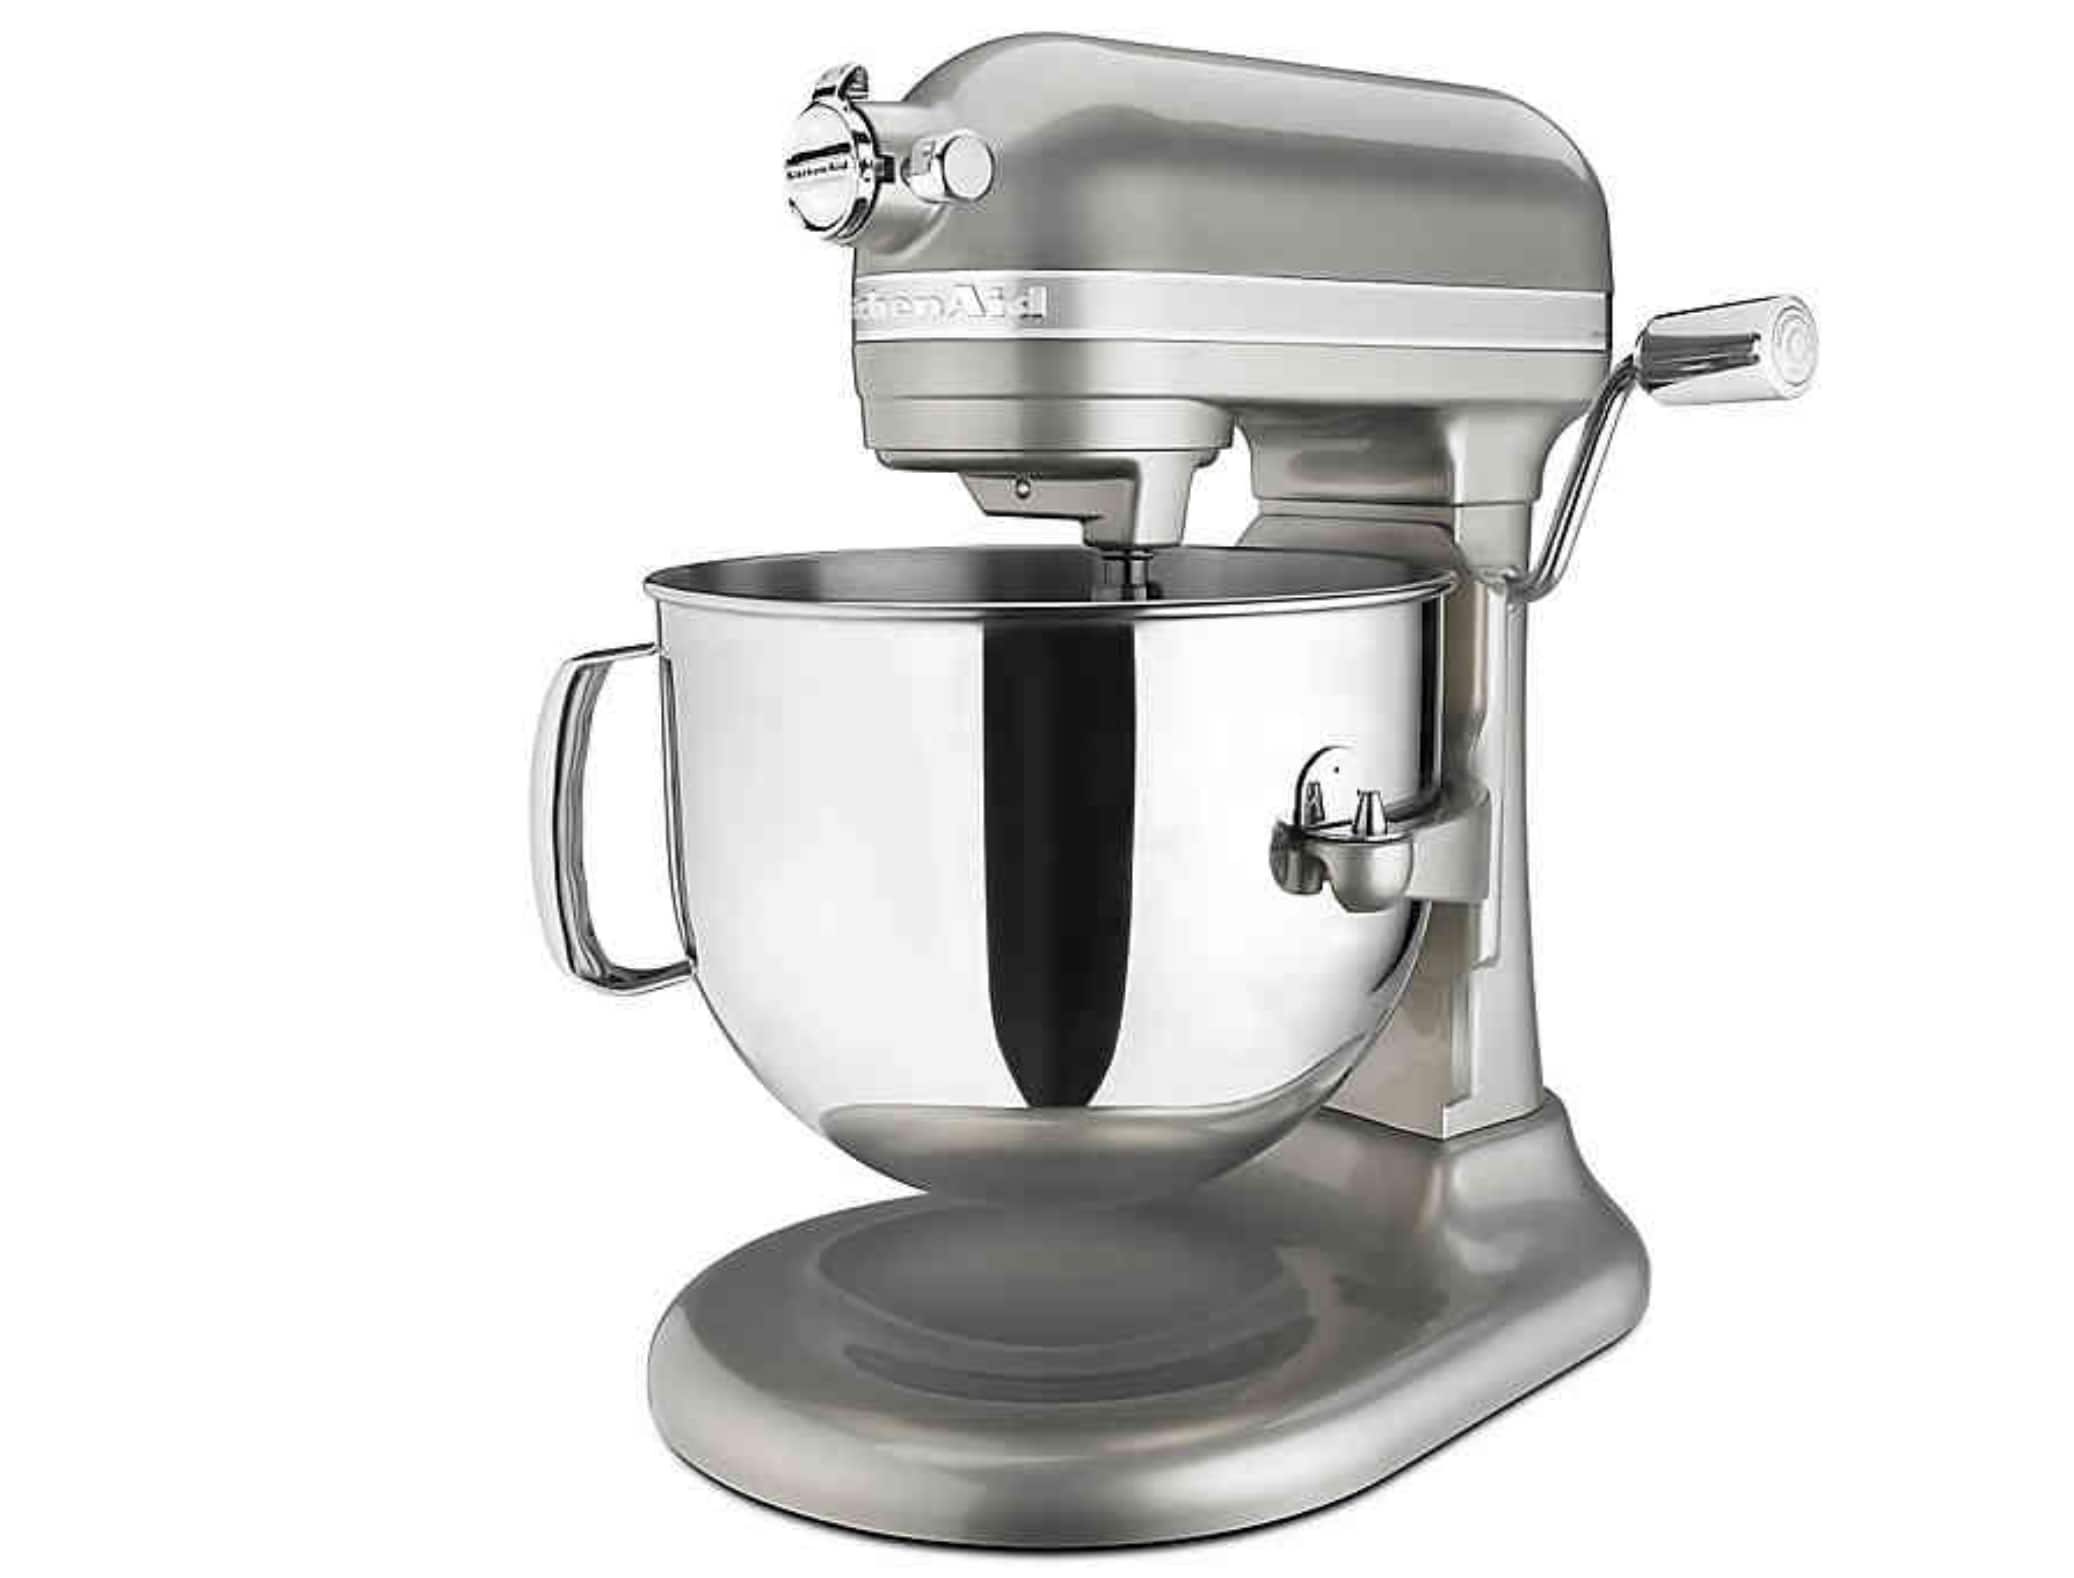 KitchenAid Pro Line 7 qt. Bowl-Lift Stand Mixer (Black, Red, or Silver) New $383.99